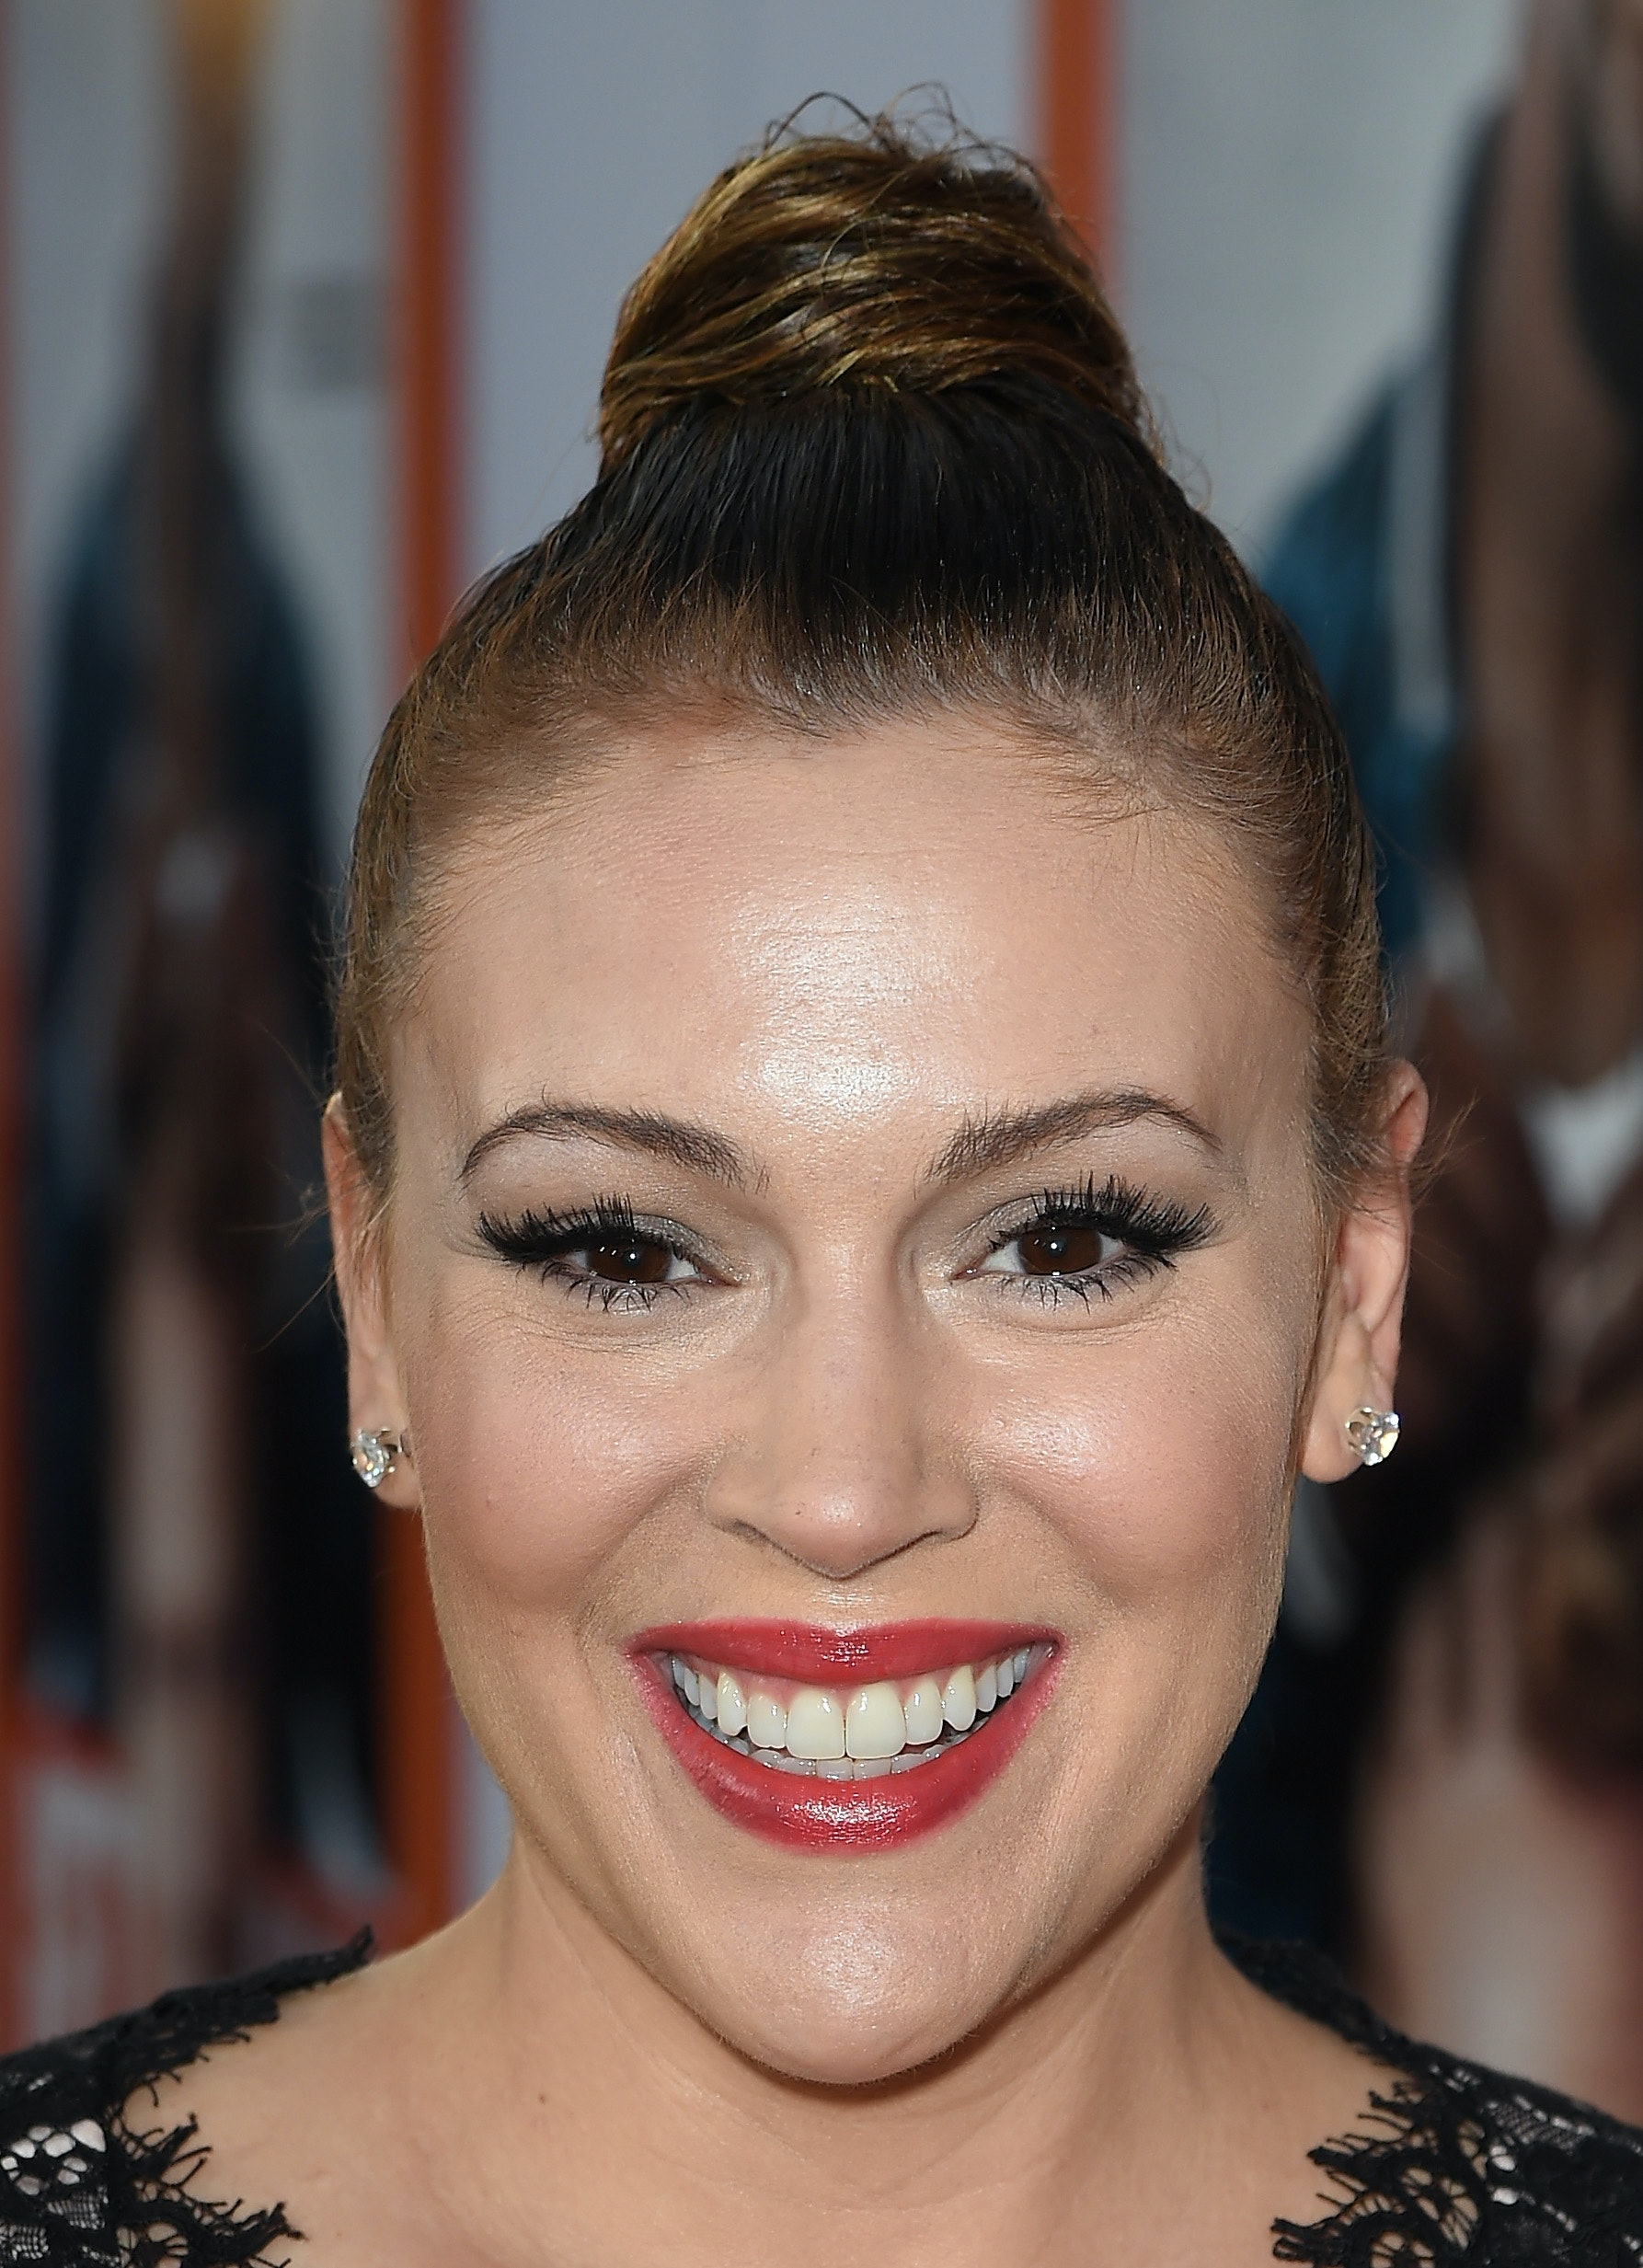 Alyssa Milano Has A Pixie Haircut That Will Remind You Of Her